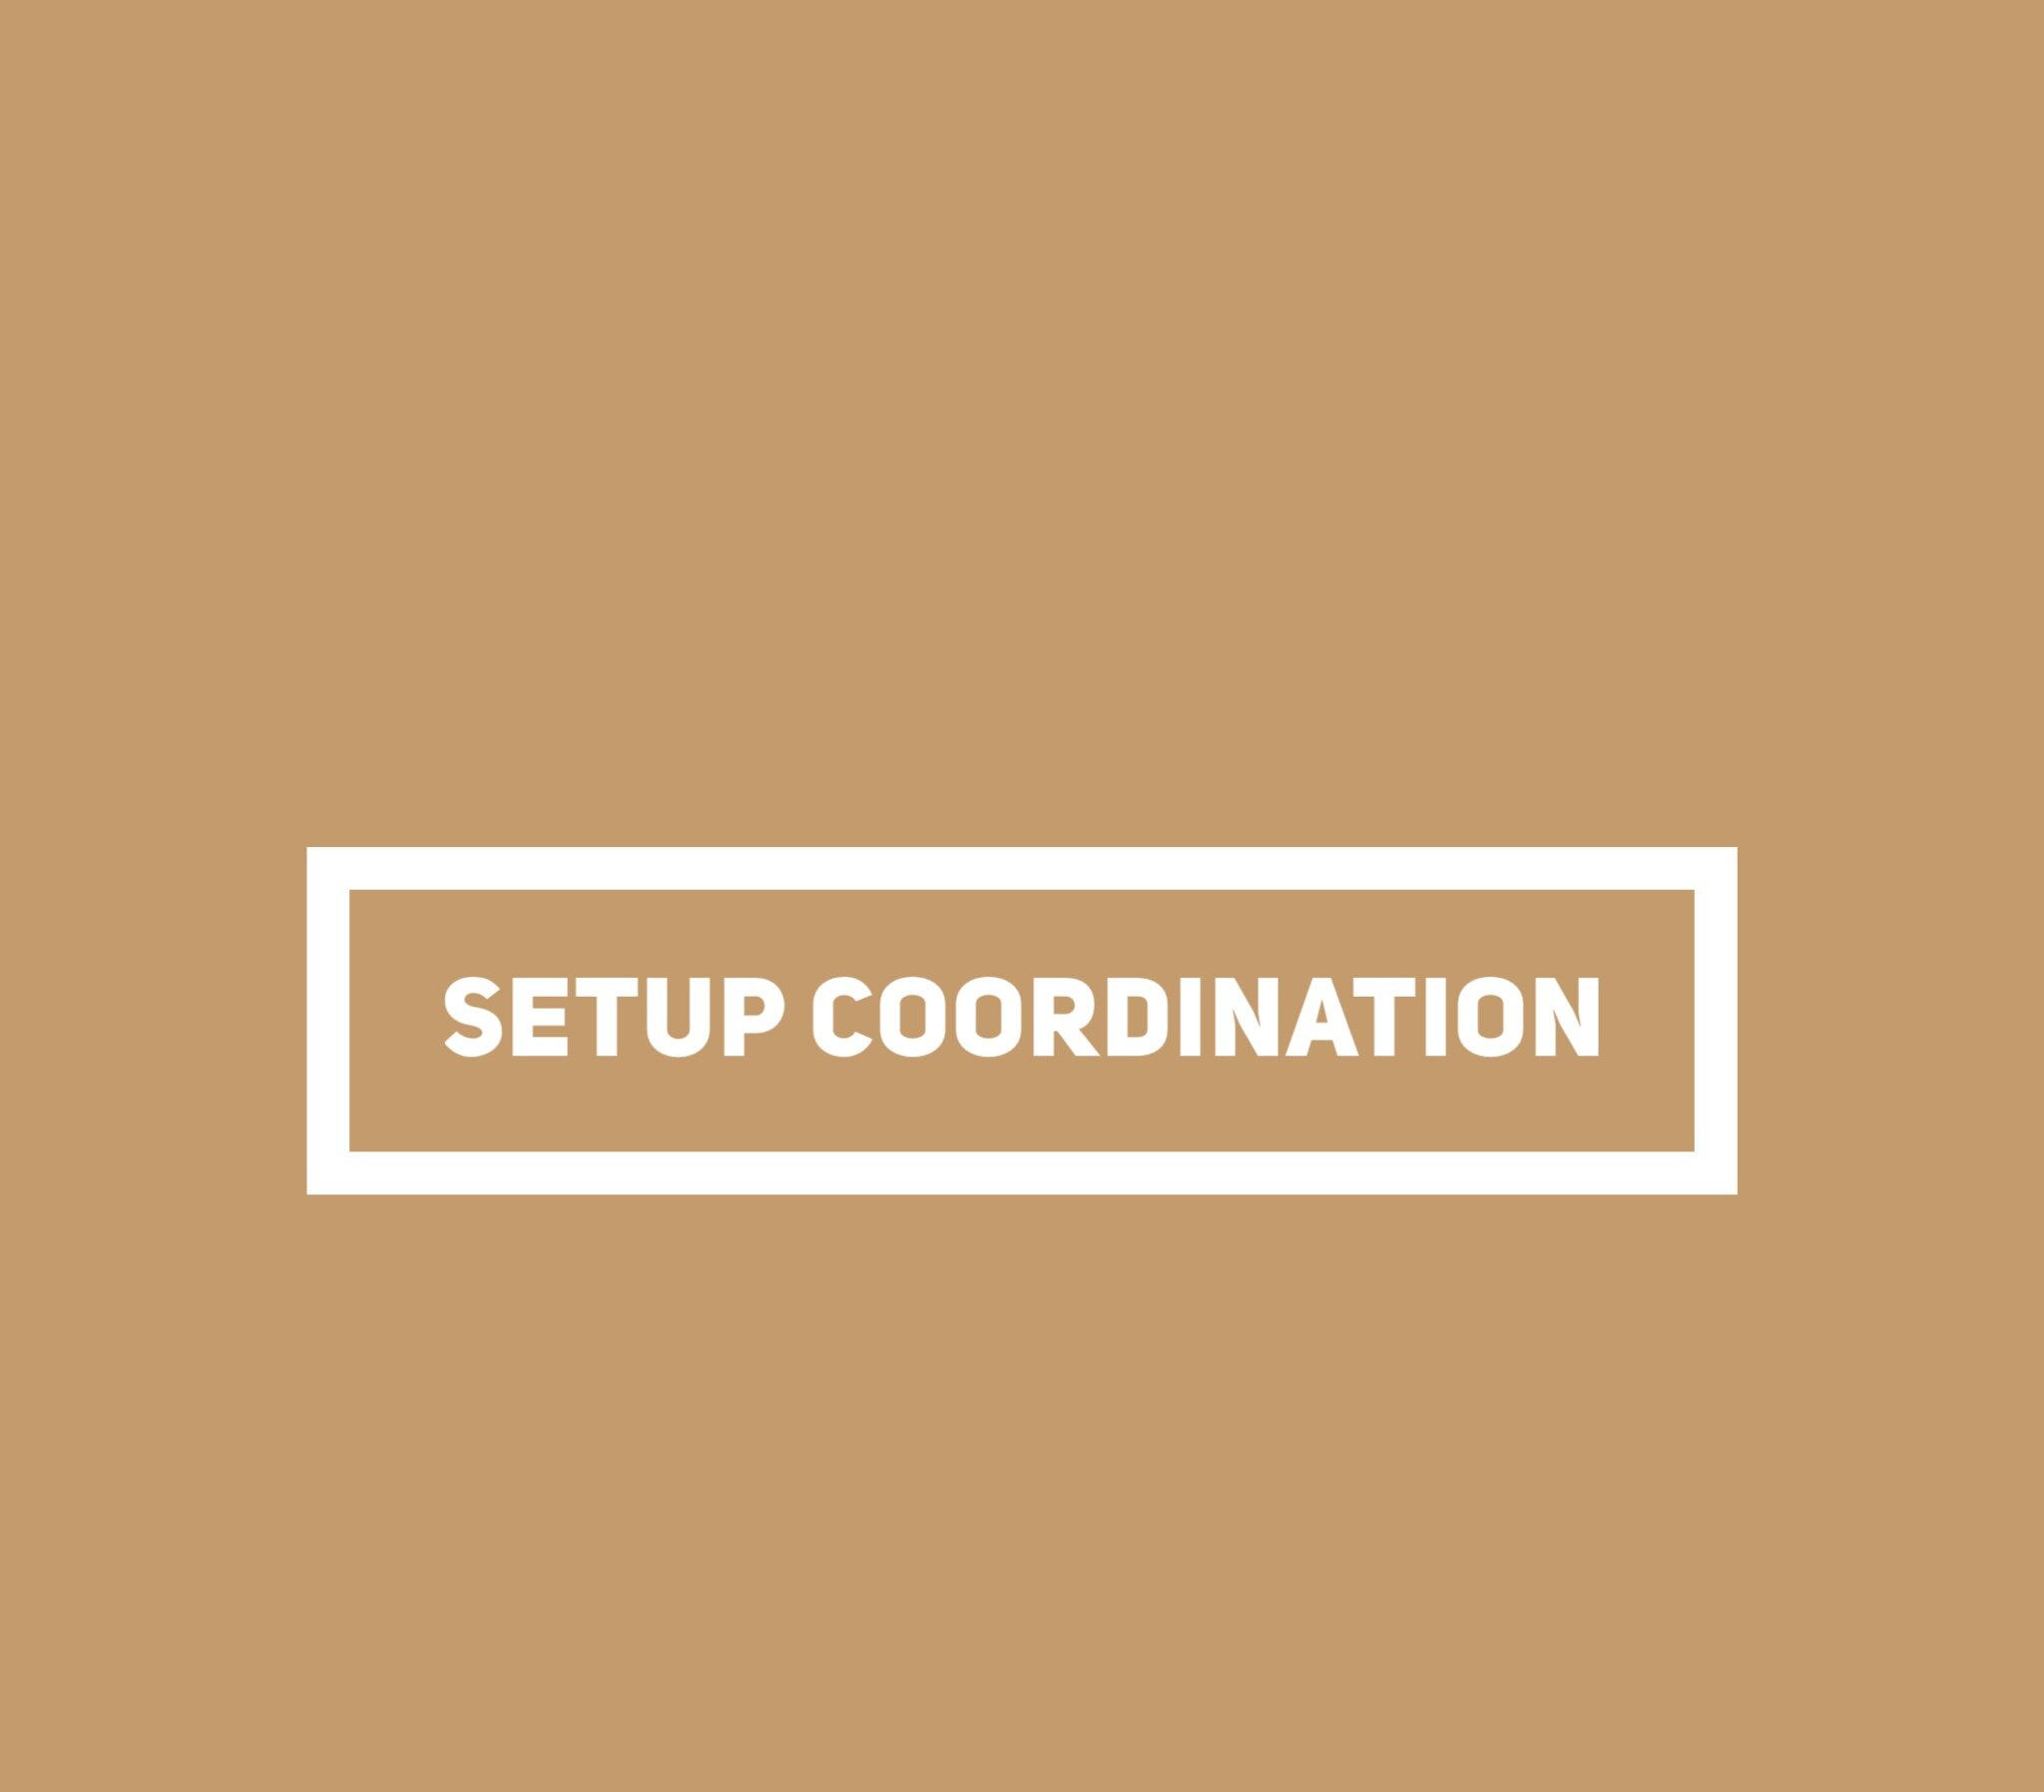 Let's get the party started - This is a bundle of the preliminary coordination, the planning coordination, and also includes setup of the actual wedding day! This covers design coordination and set up until 2 hours before your wedding!Investment: $650